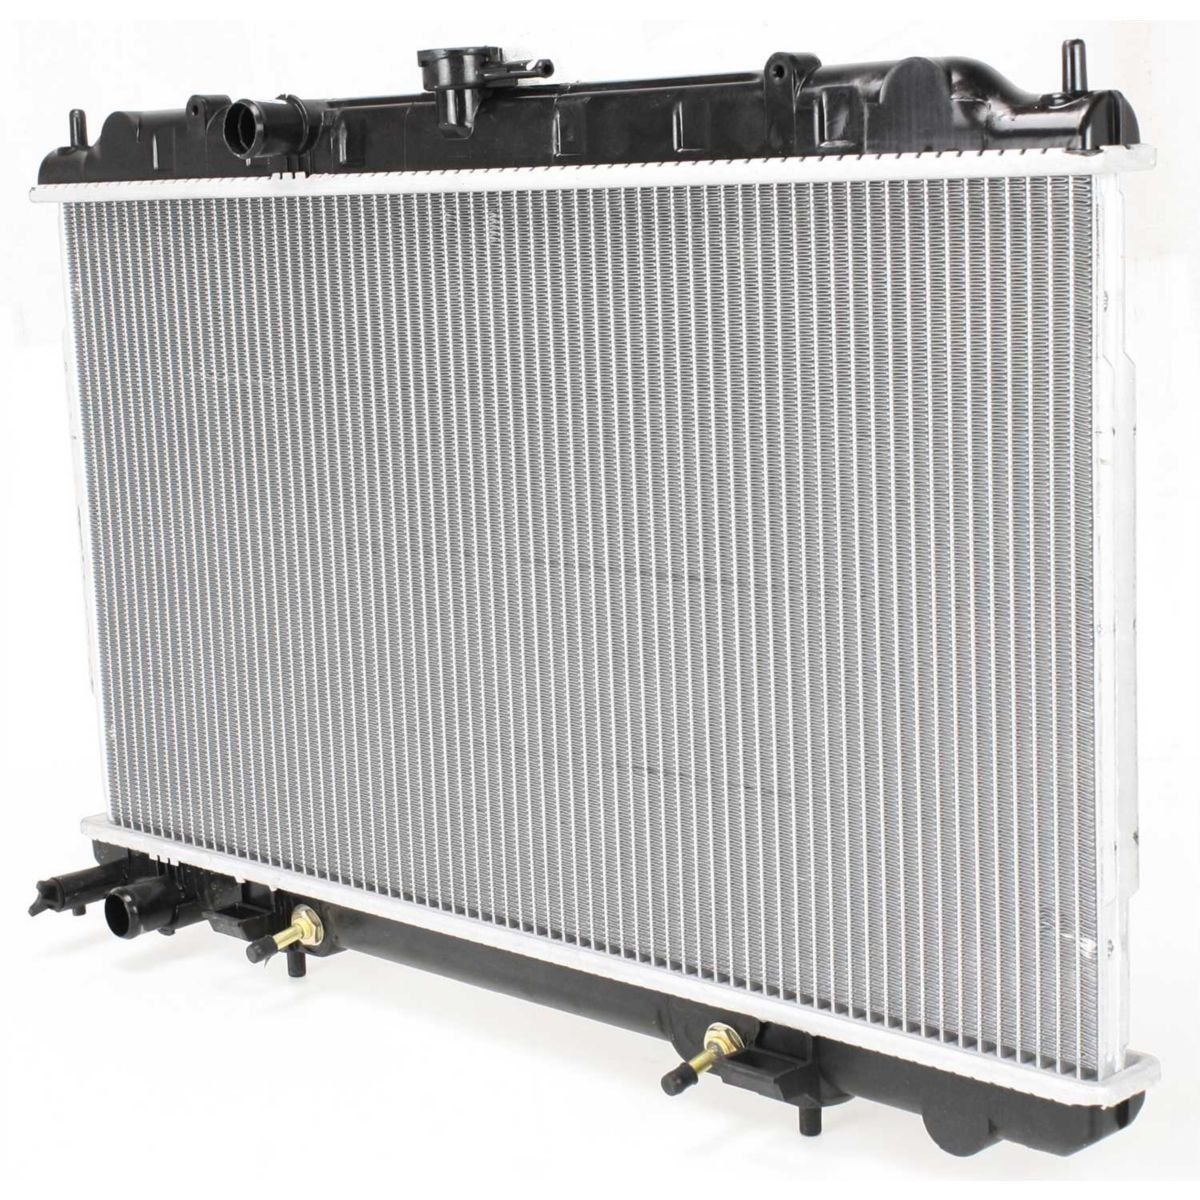 Diften 109-A1175-X01 - New Radiator for Nissan Sentra 2000-2006